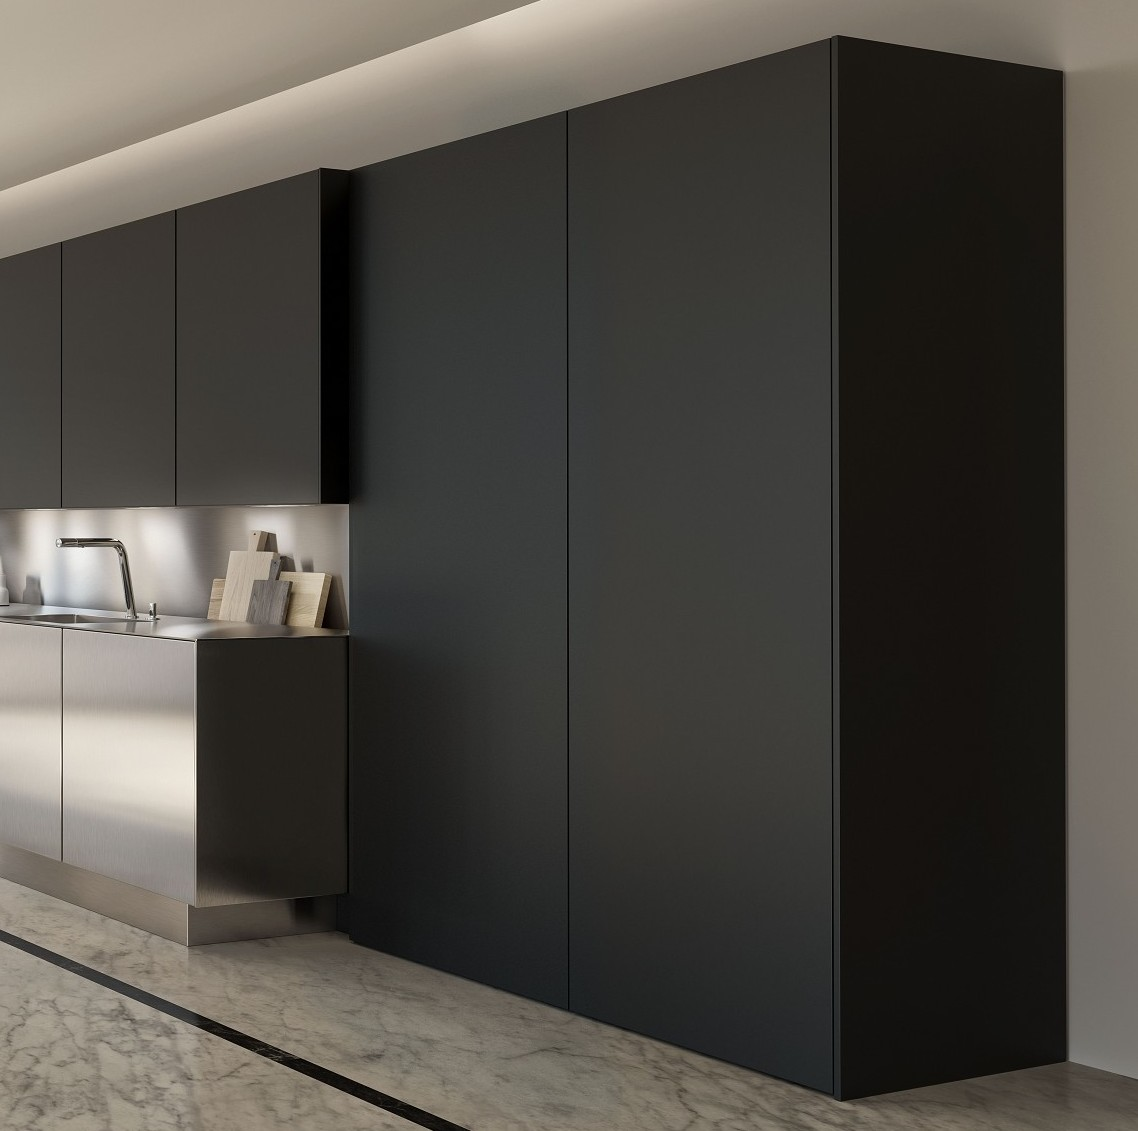 SieMatic SE cabinets from the Pure style collection in graphite grey matte lacquer with AntiPrint coating